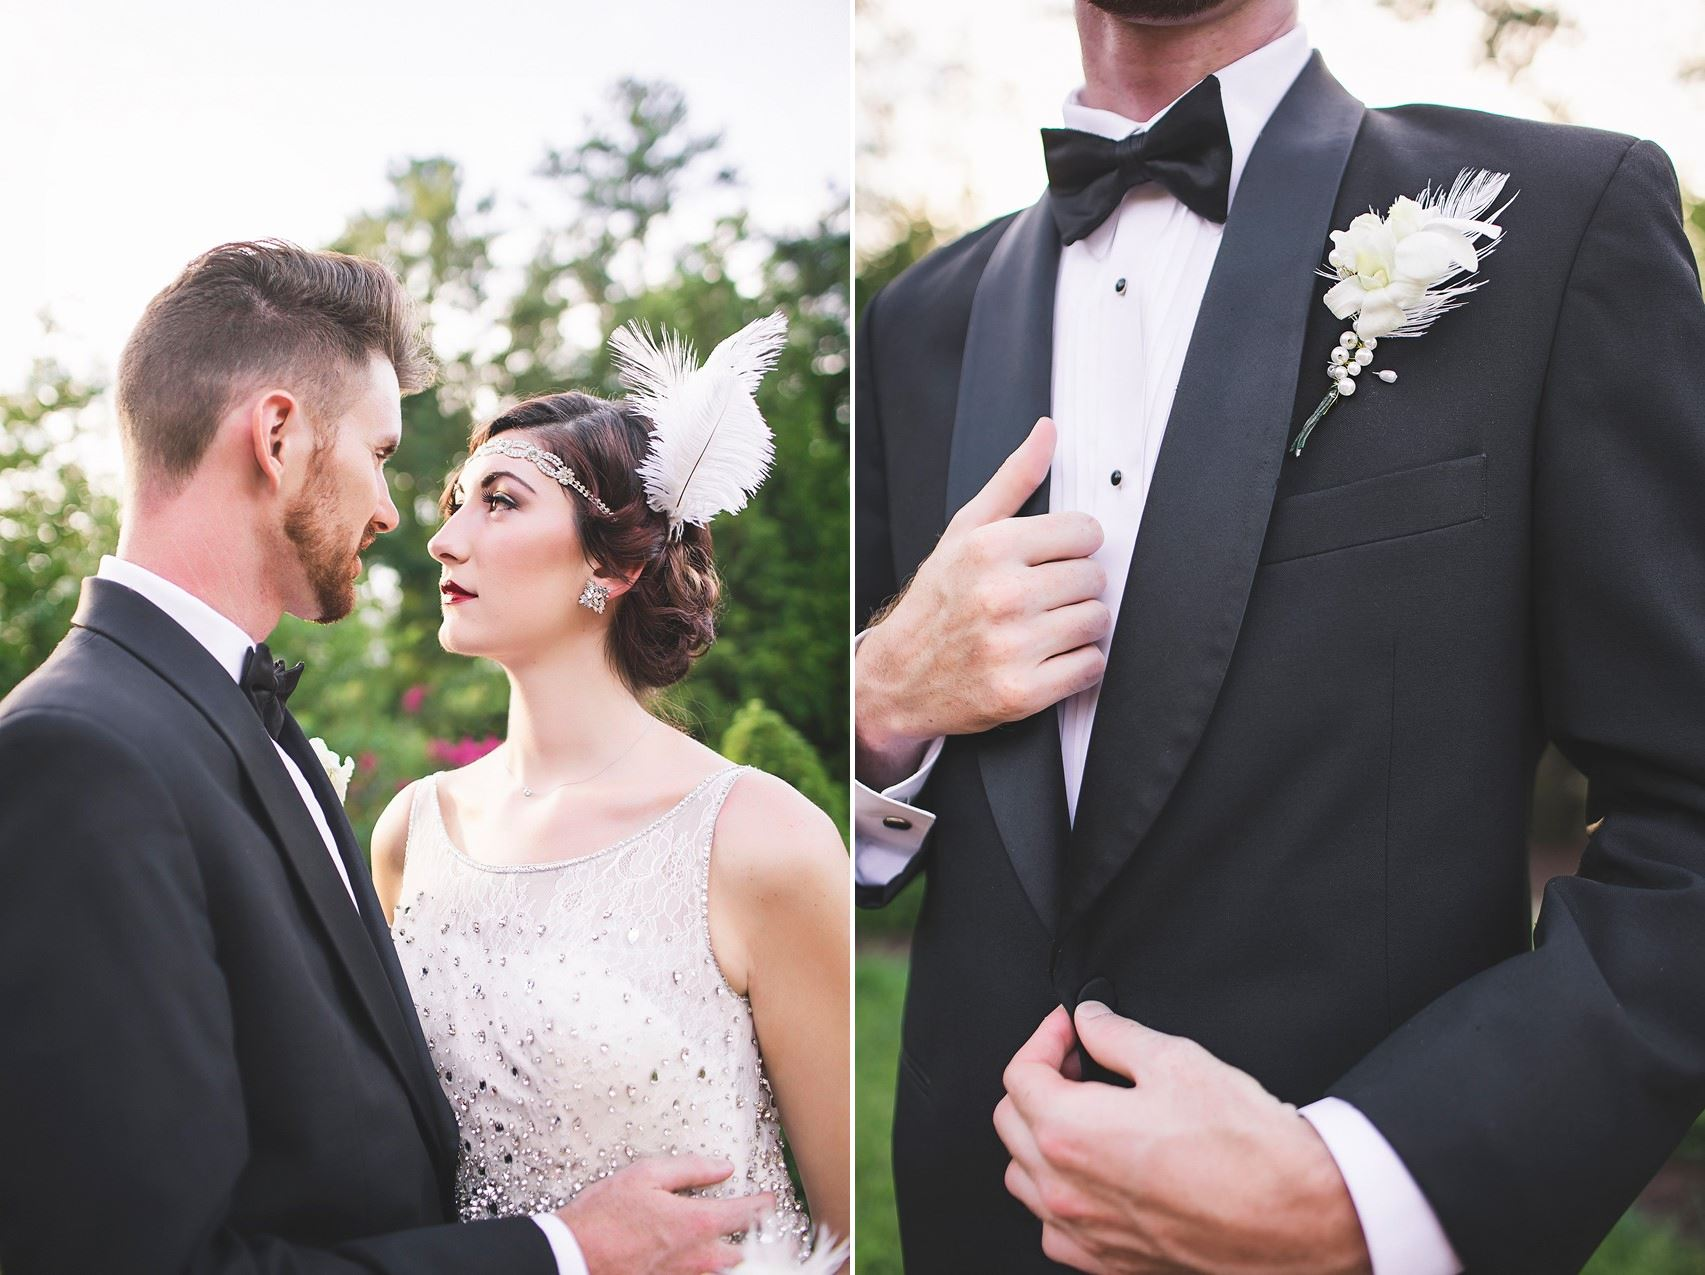 Art Deco Bride & Groom - Glamorous Art Deco Wedding Inspiration